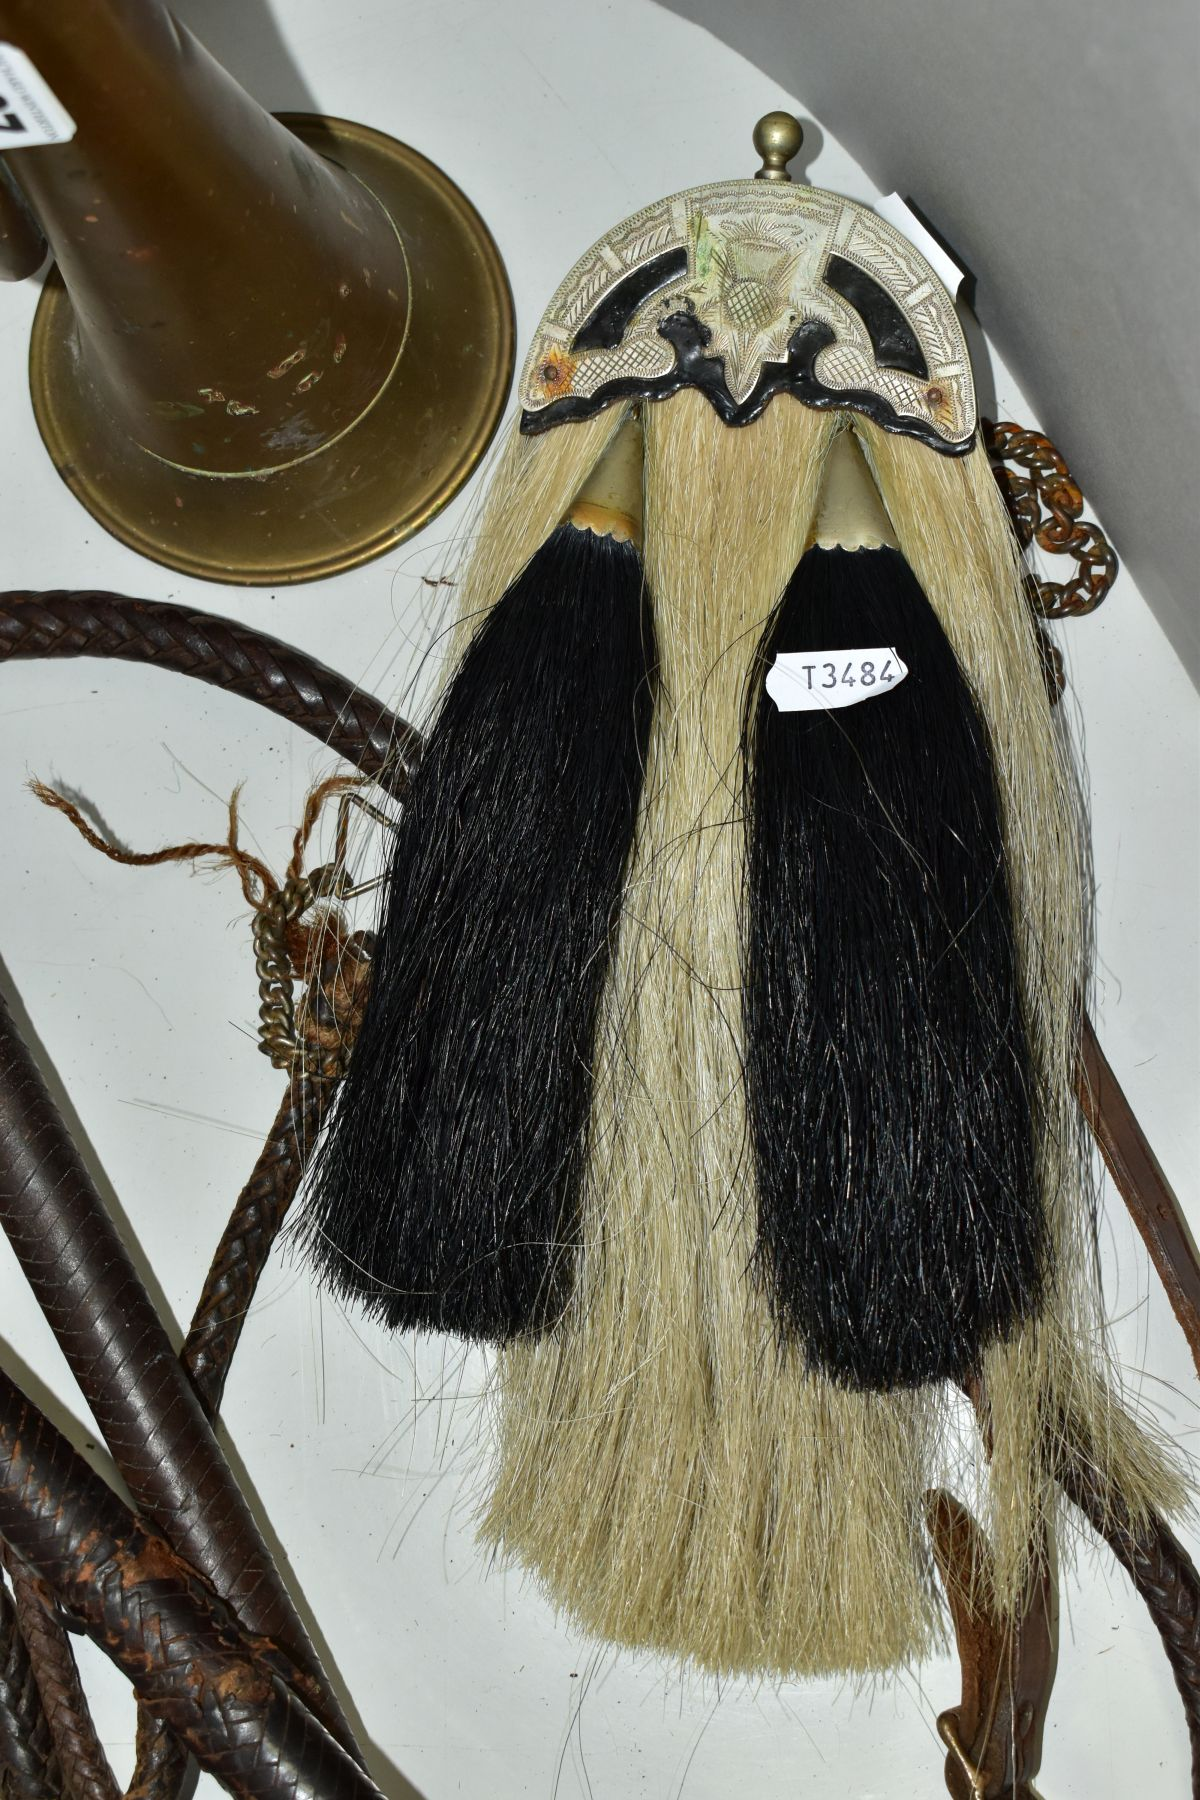 TWO LEATHER WHIPS, bone handles, metal mounts one with engraved coronet, worn condition, with a semi - Image 4 of 6